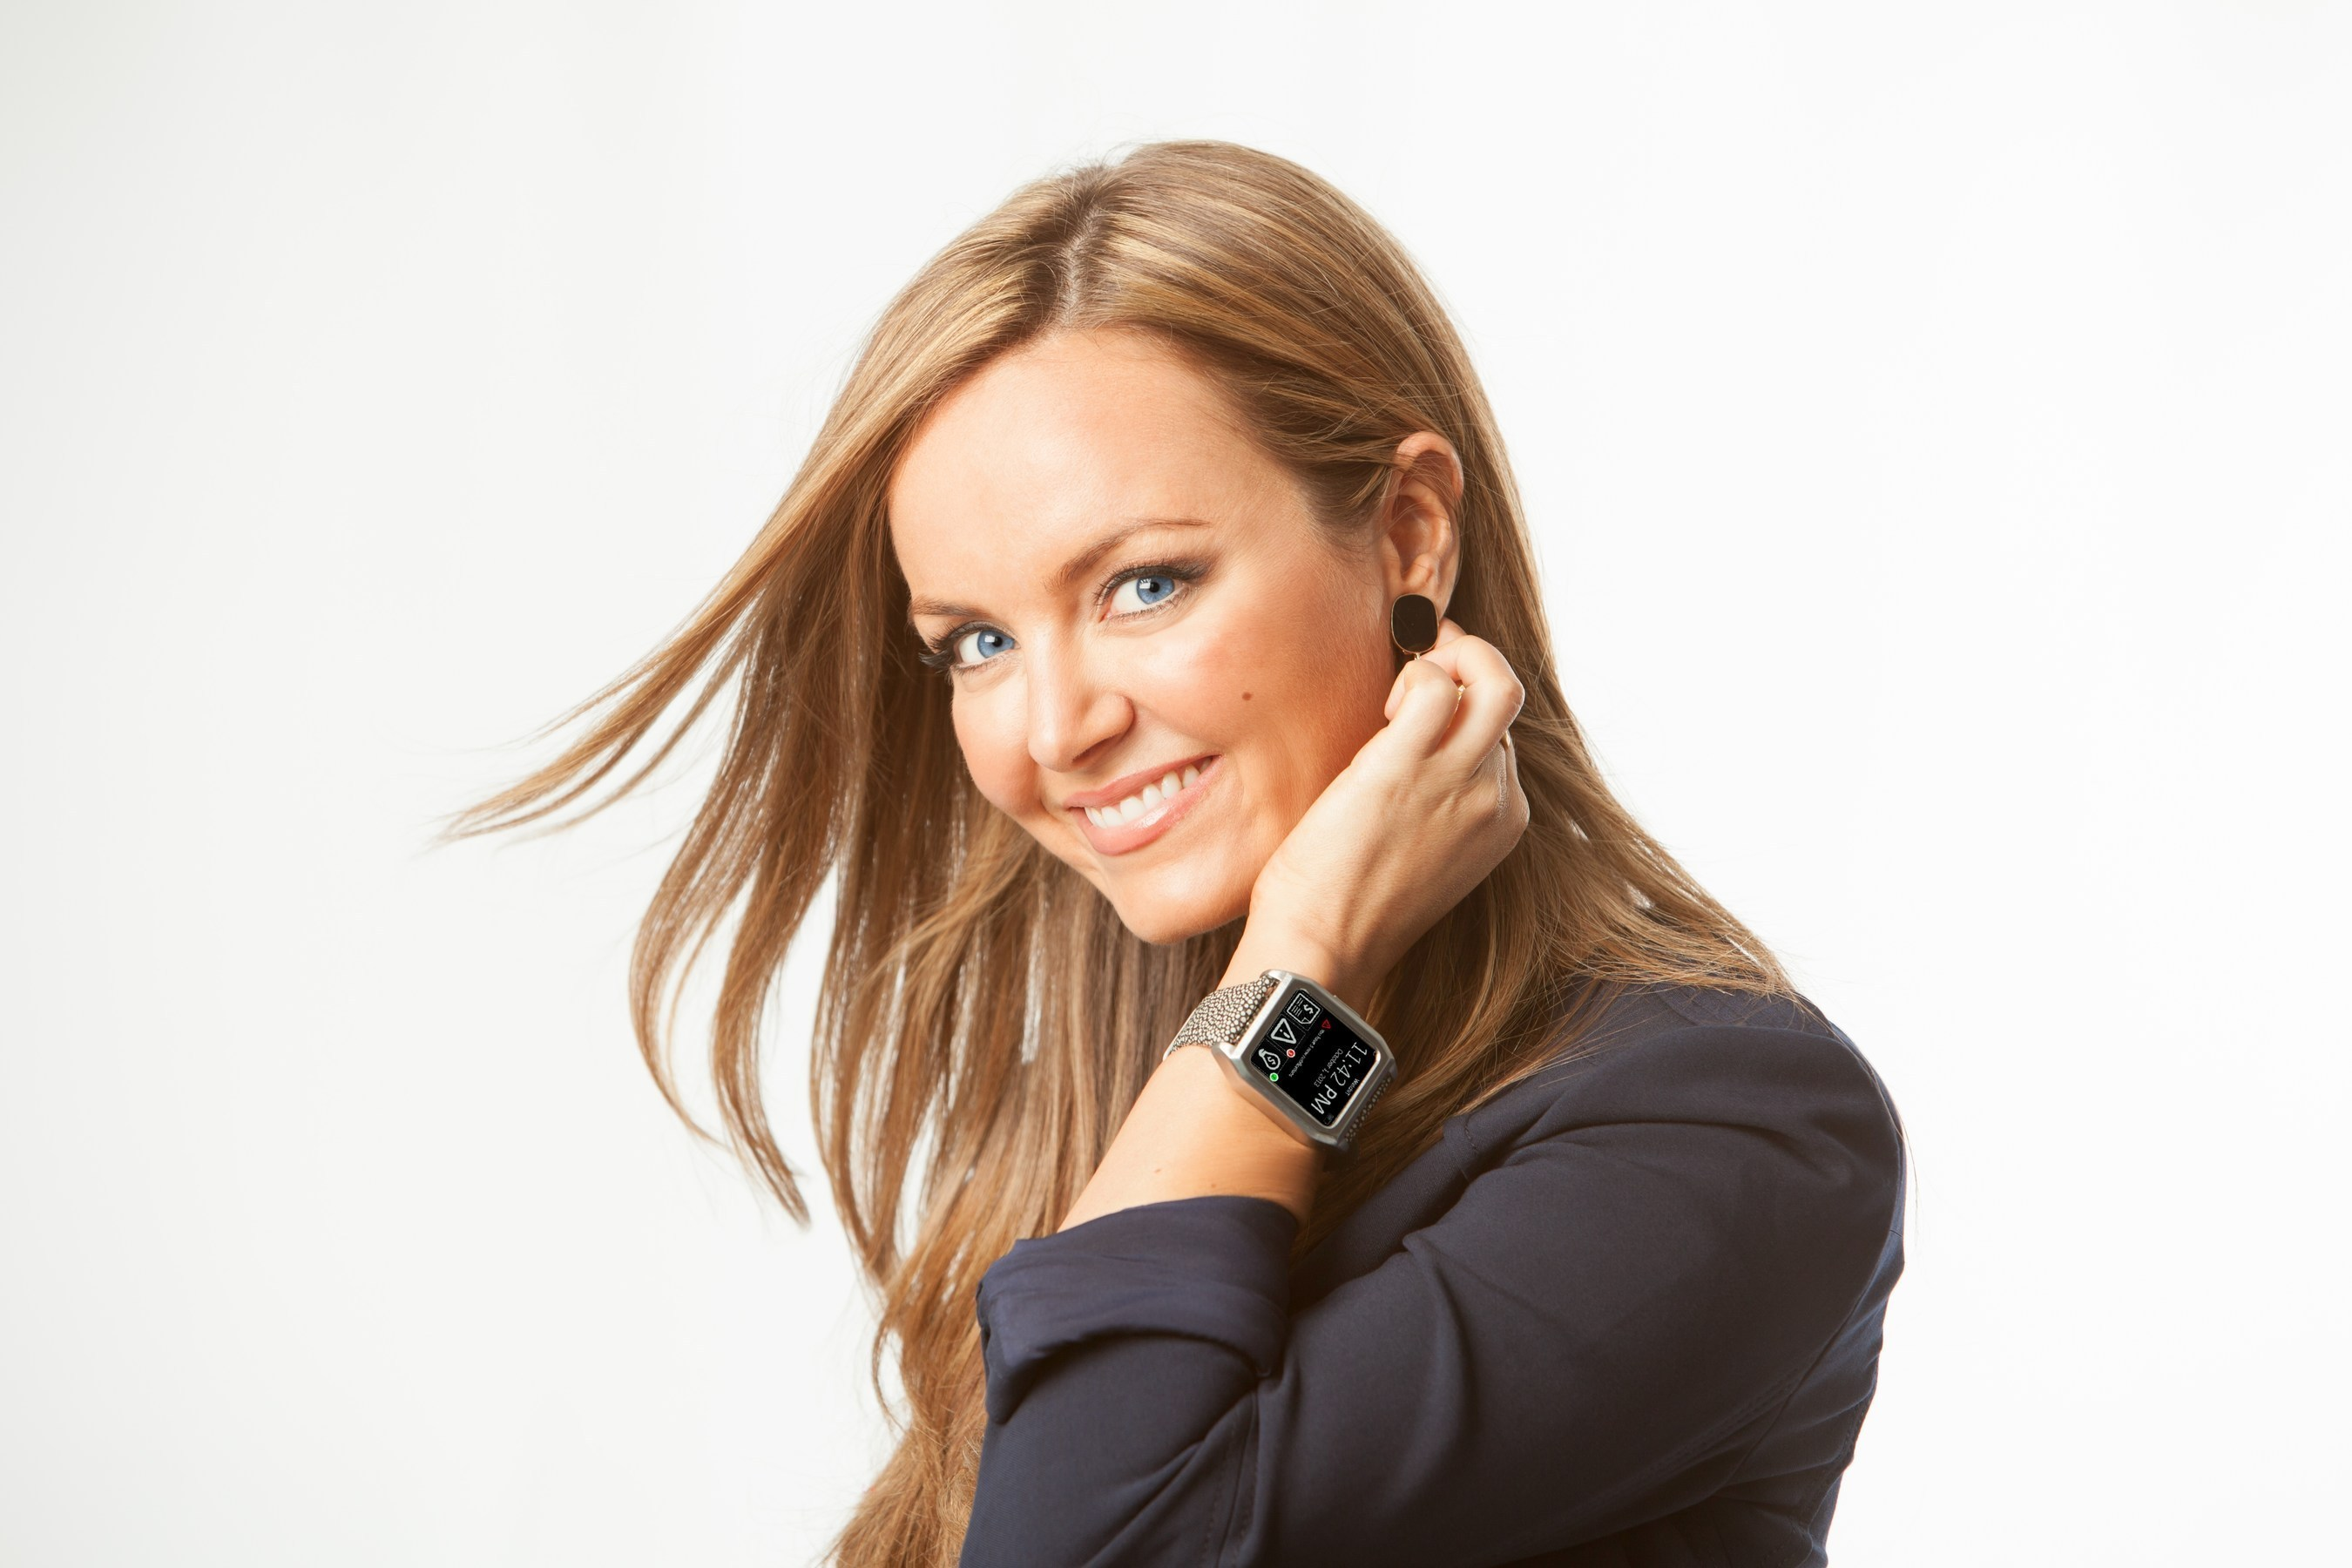 Financial expert and TV news personality Nicole Lapin founder of CASH Smartwatch.